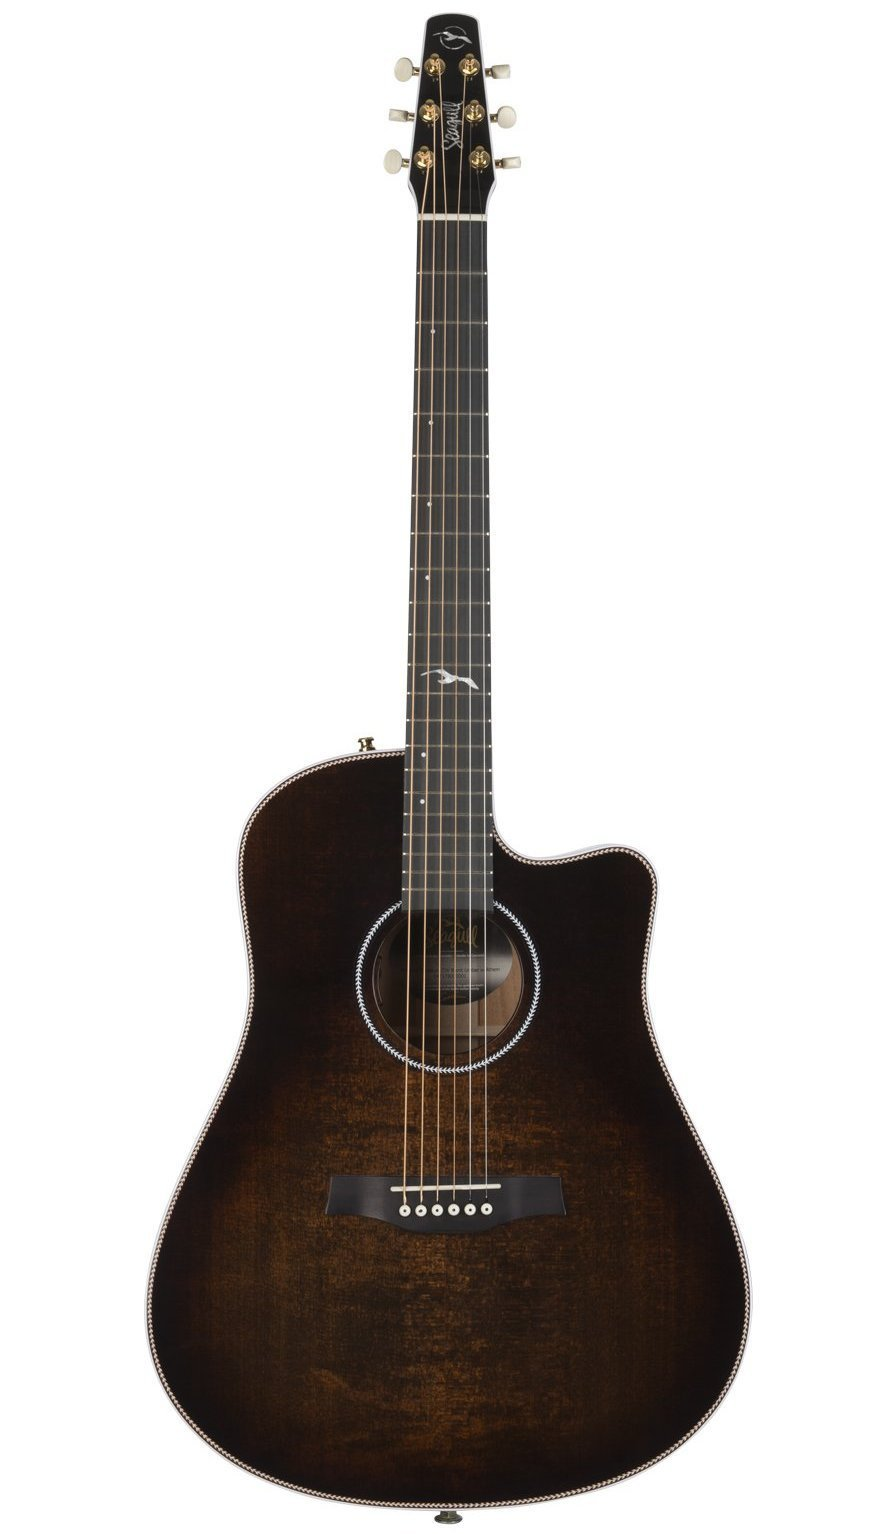 Seagull Artist Peppino Signature CW Bourbon Burst Guitar